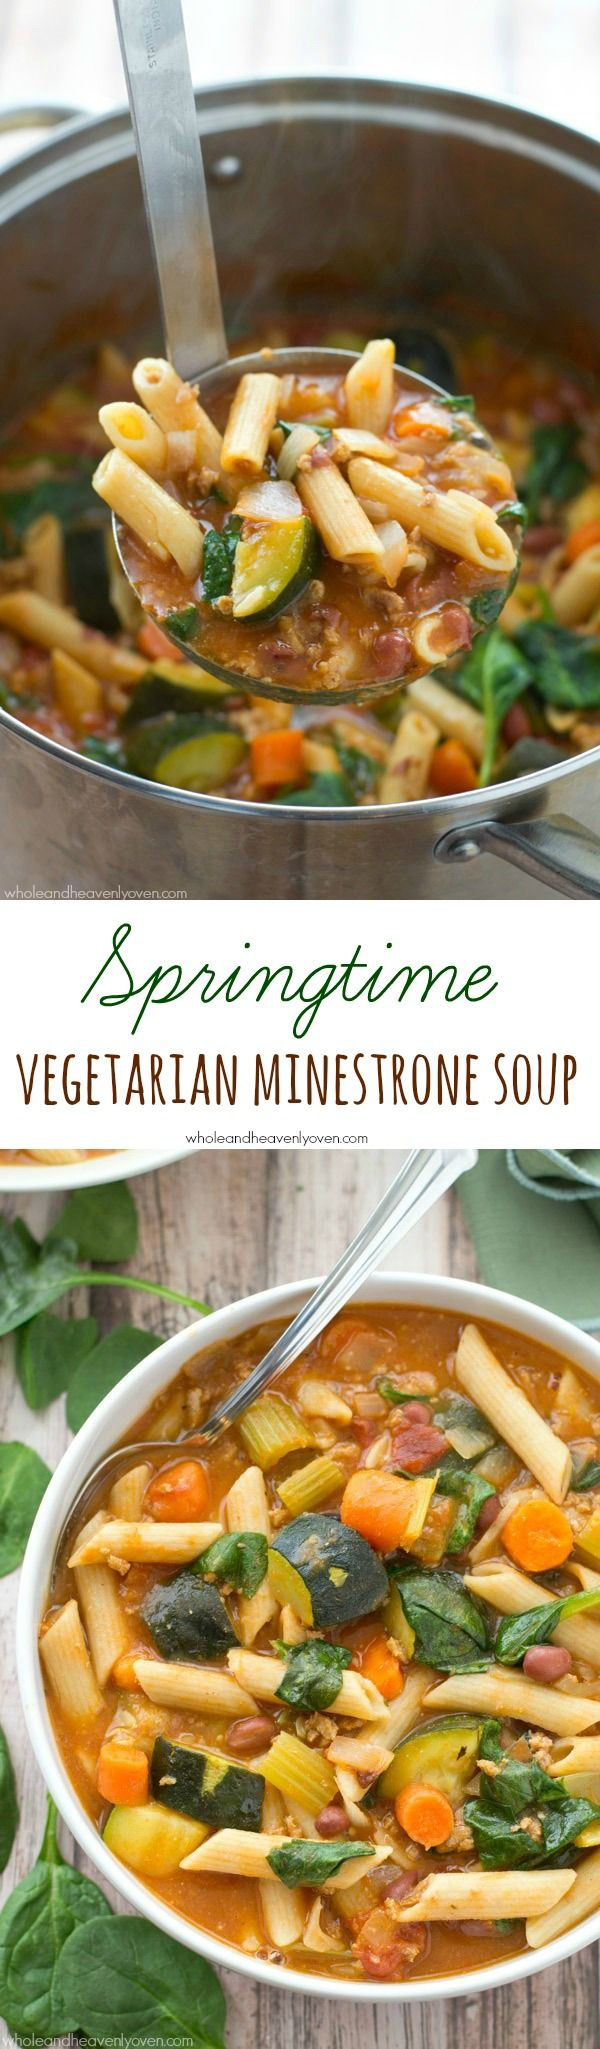 Loaded with tons of spring veggies and packed with an unbelievable amount of flavor, you won't miss the meat at all in this comforting vegetarian minestrone soup! @WholeHeavenly